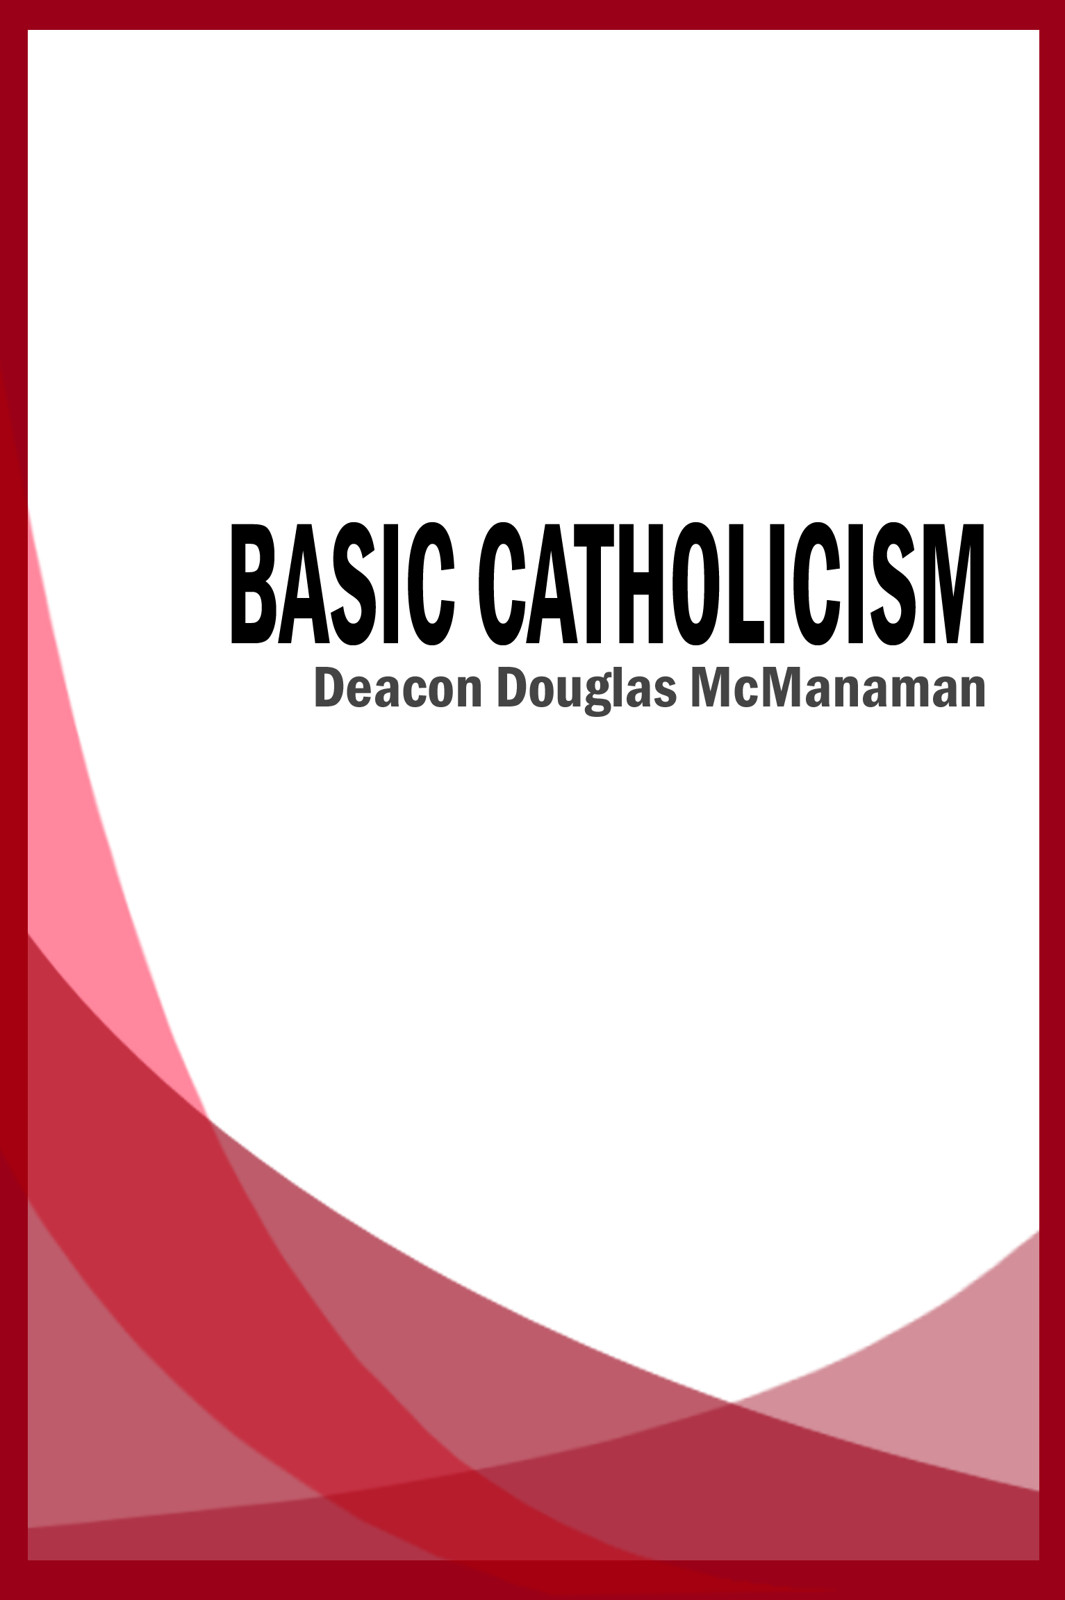 Basic Catholicism